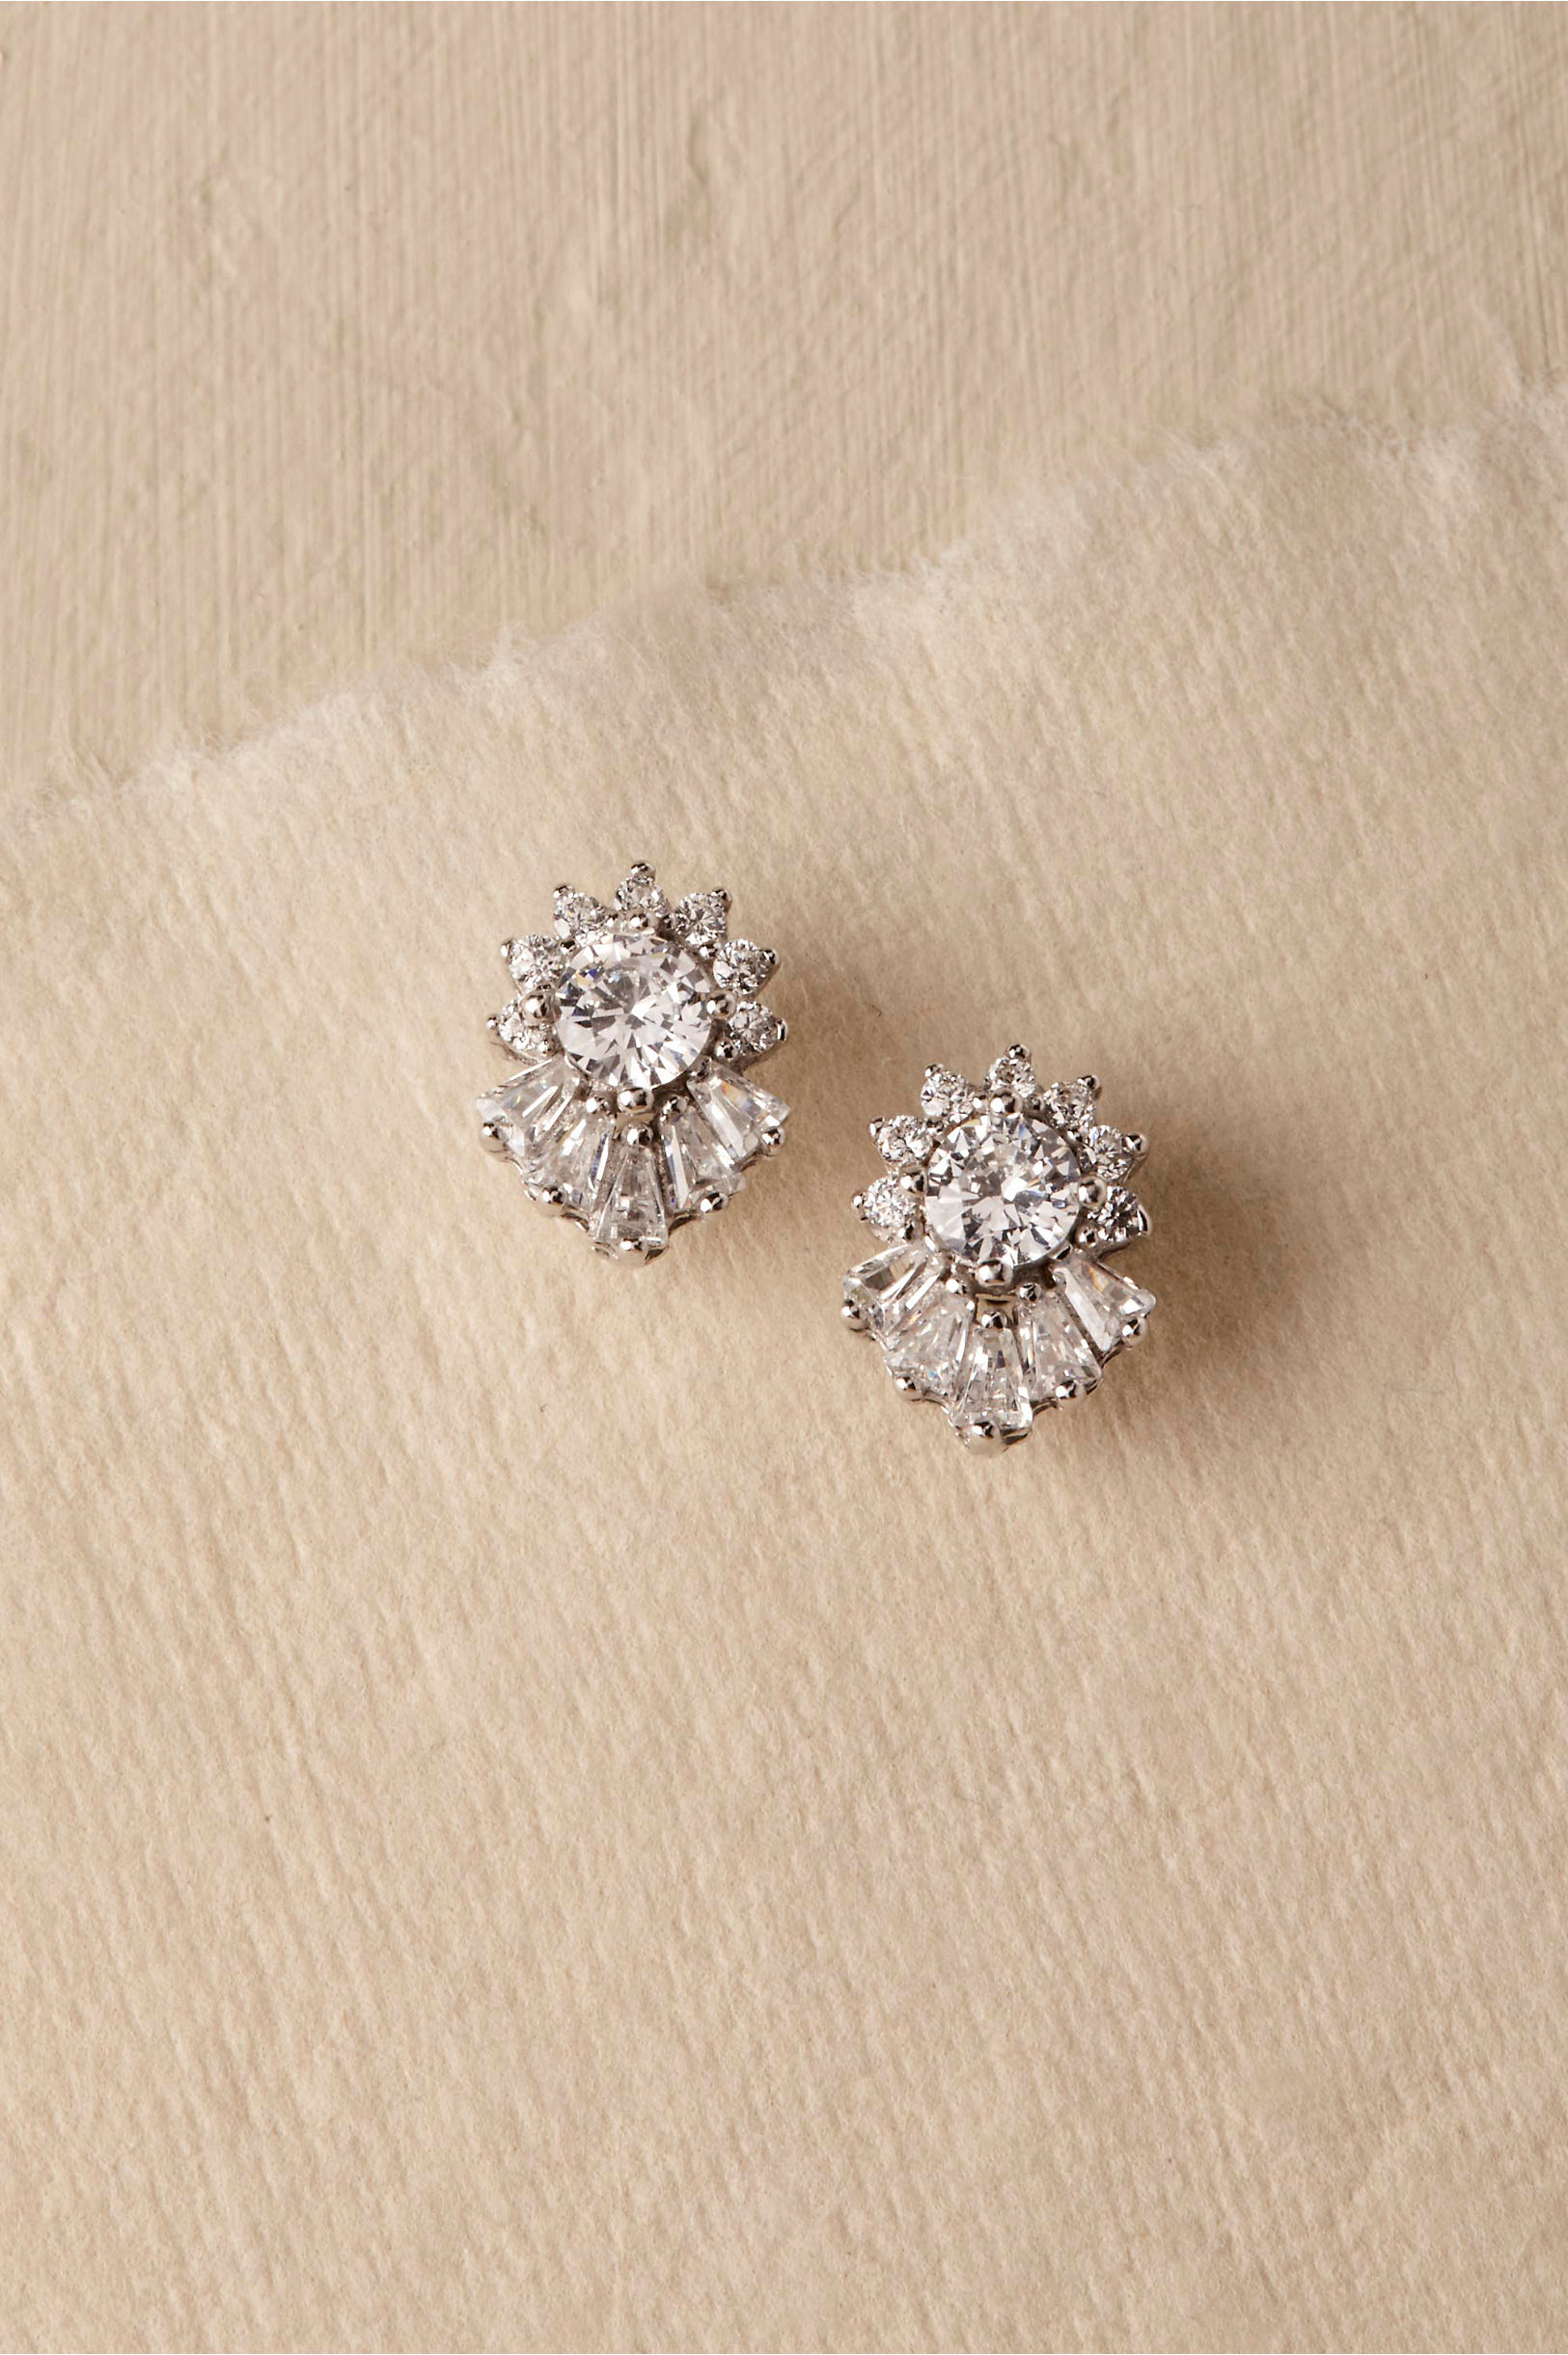 Bridesmaid jewelry earrings necklaces bracelets bhldn lexie stud earrings junglespirit Image collections